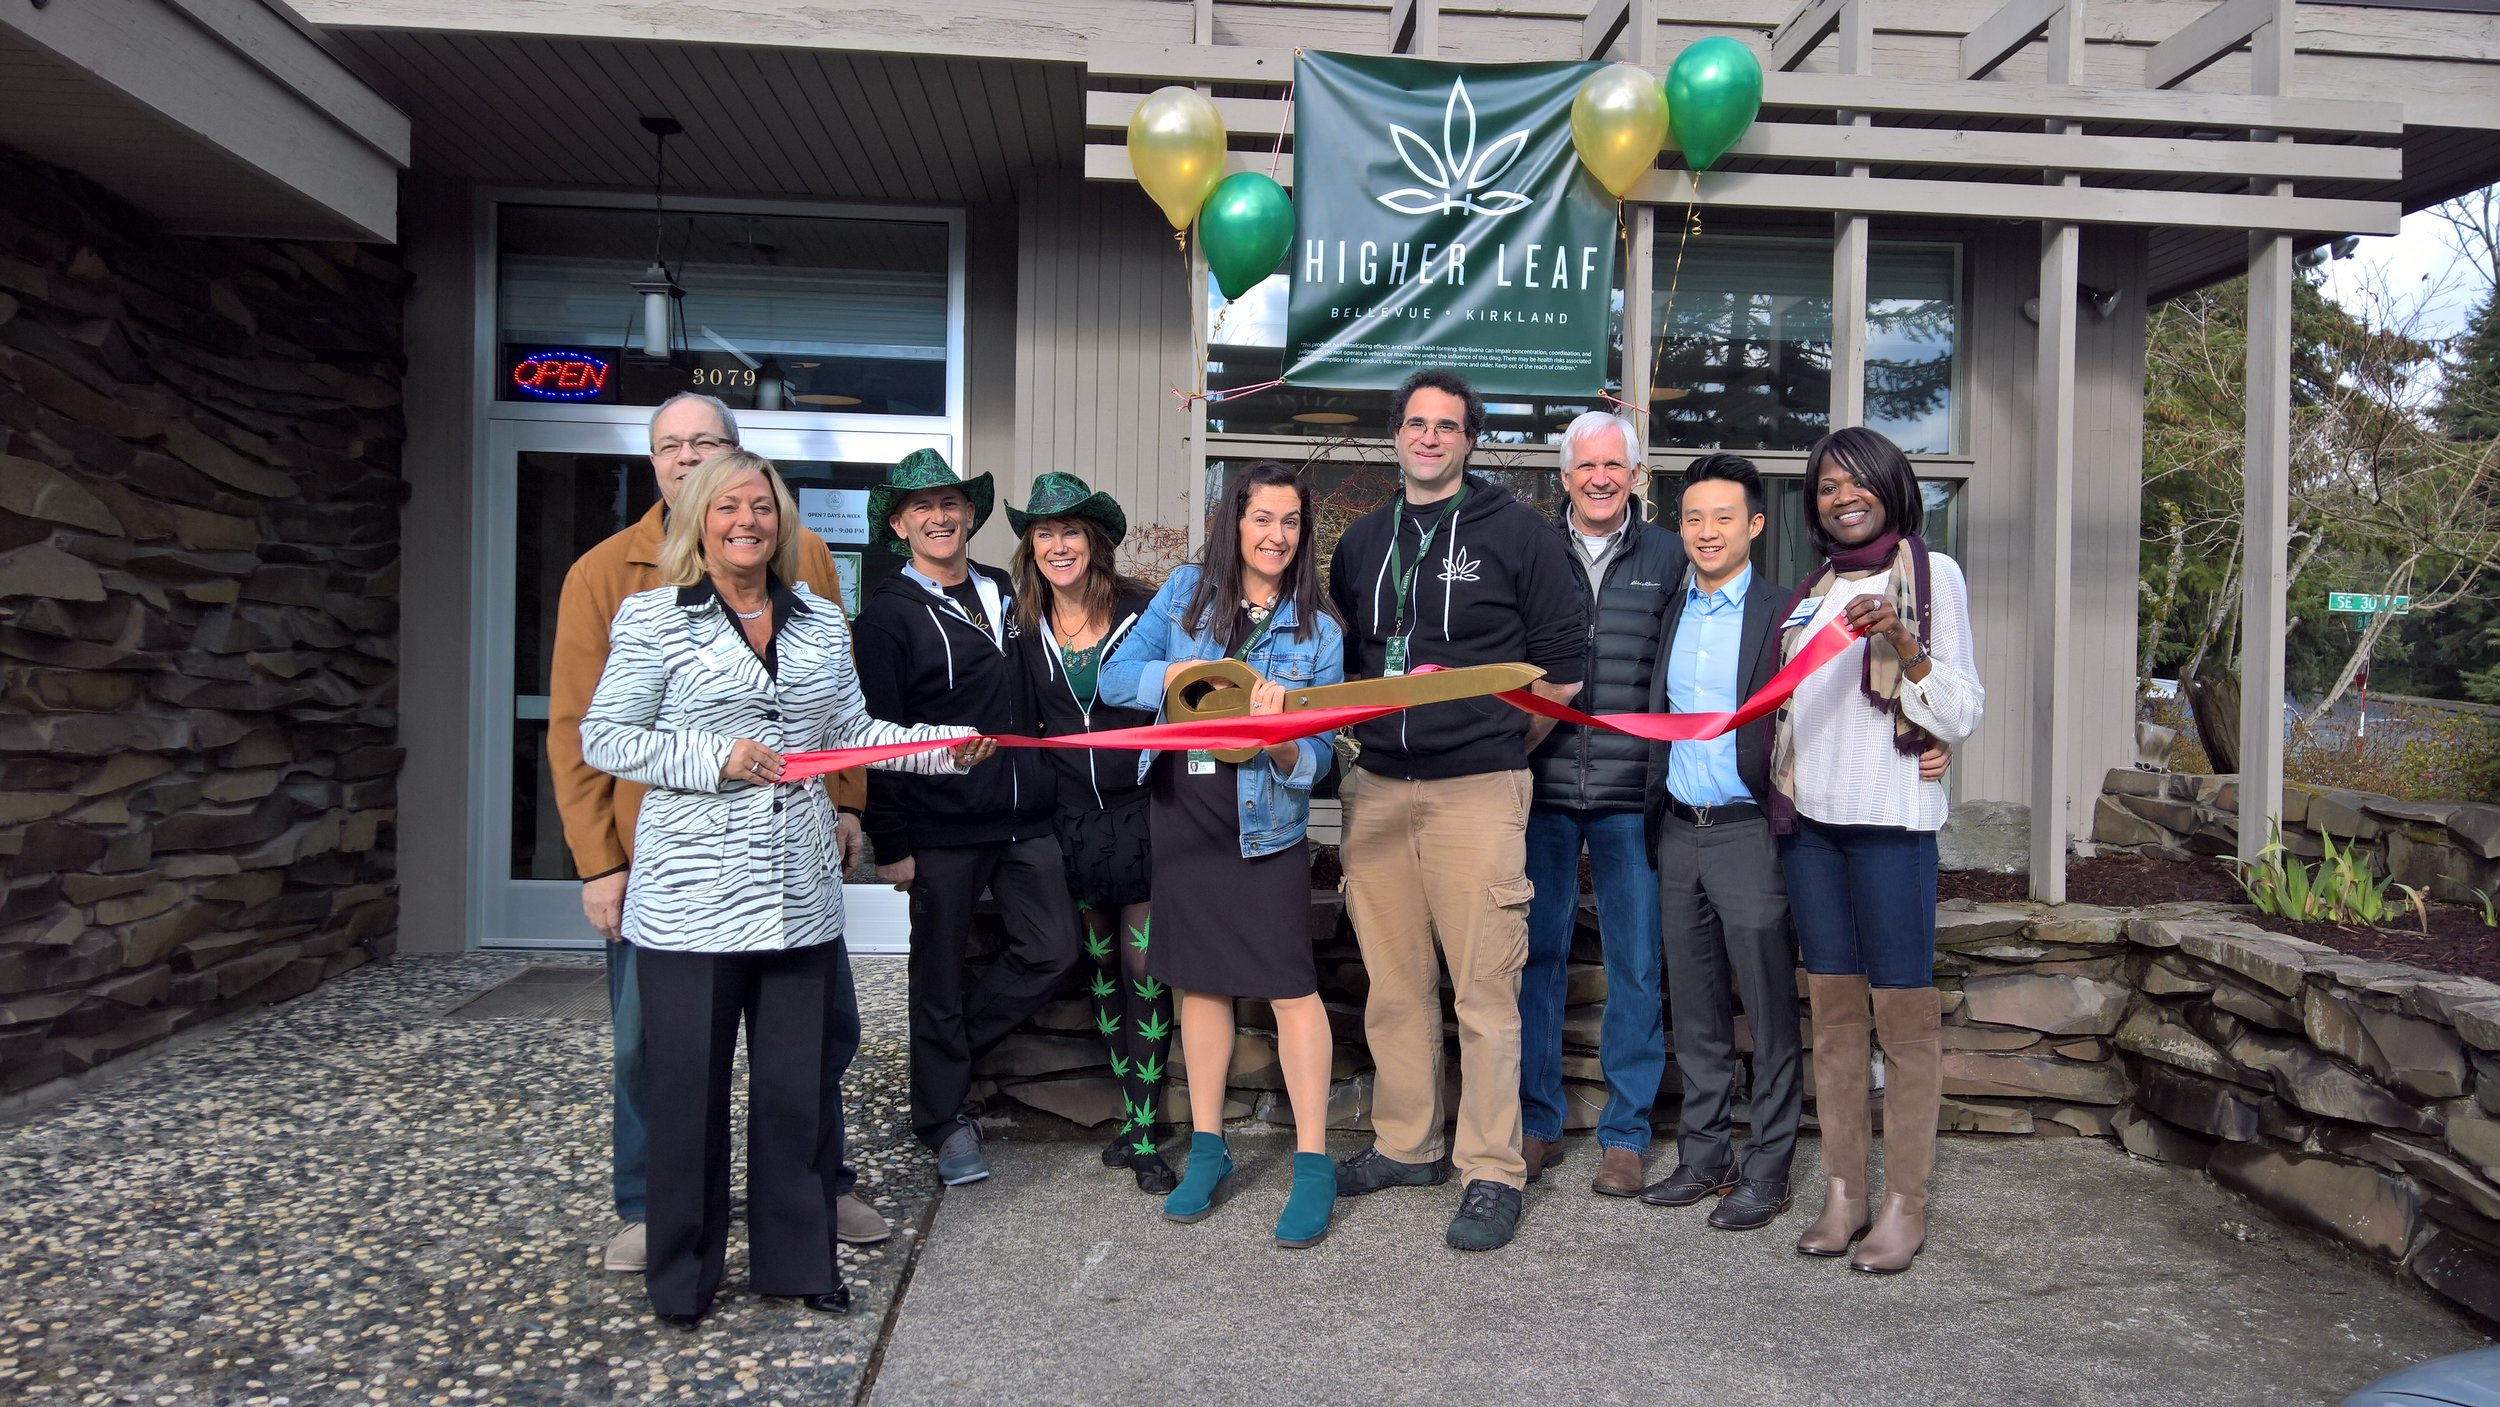 Members of the Bellevue Chamber of Commerce celebrated the opening of Higher Leaf's Bellevue location with a ribbon cutting ceremony. We're so excited to join the Bellevue community! We look forward to a great future with our fellow Eastgate businesses.